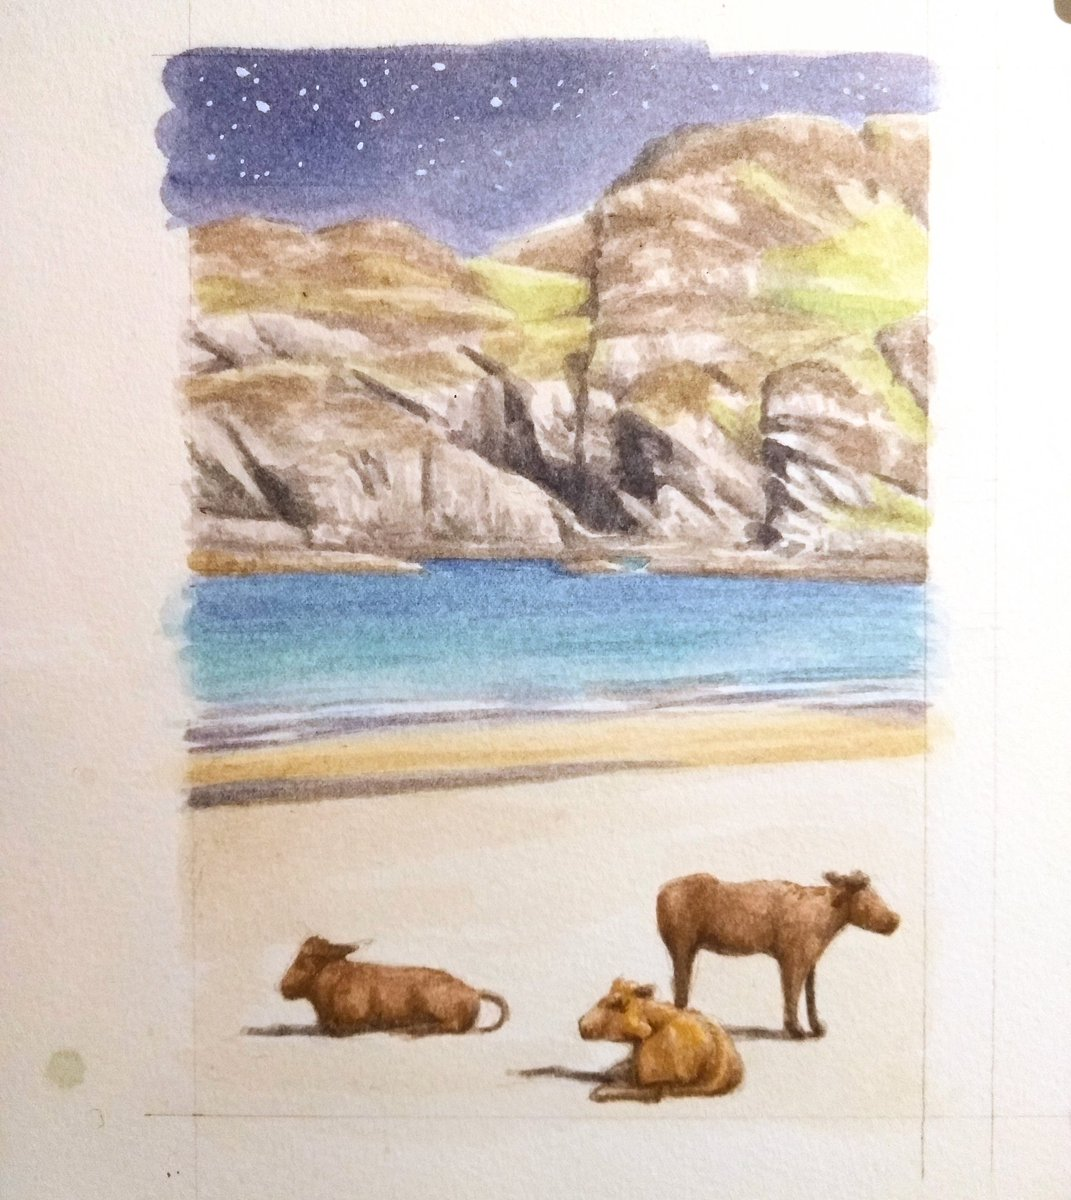 test Twitter Media - Cows on a beach. Kiloran Bay, Colonsay. Scotland. #watercolour https://t.co/DCfGkQ7aVL